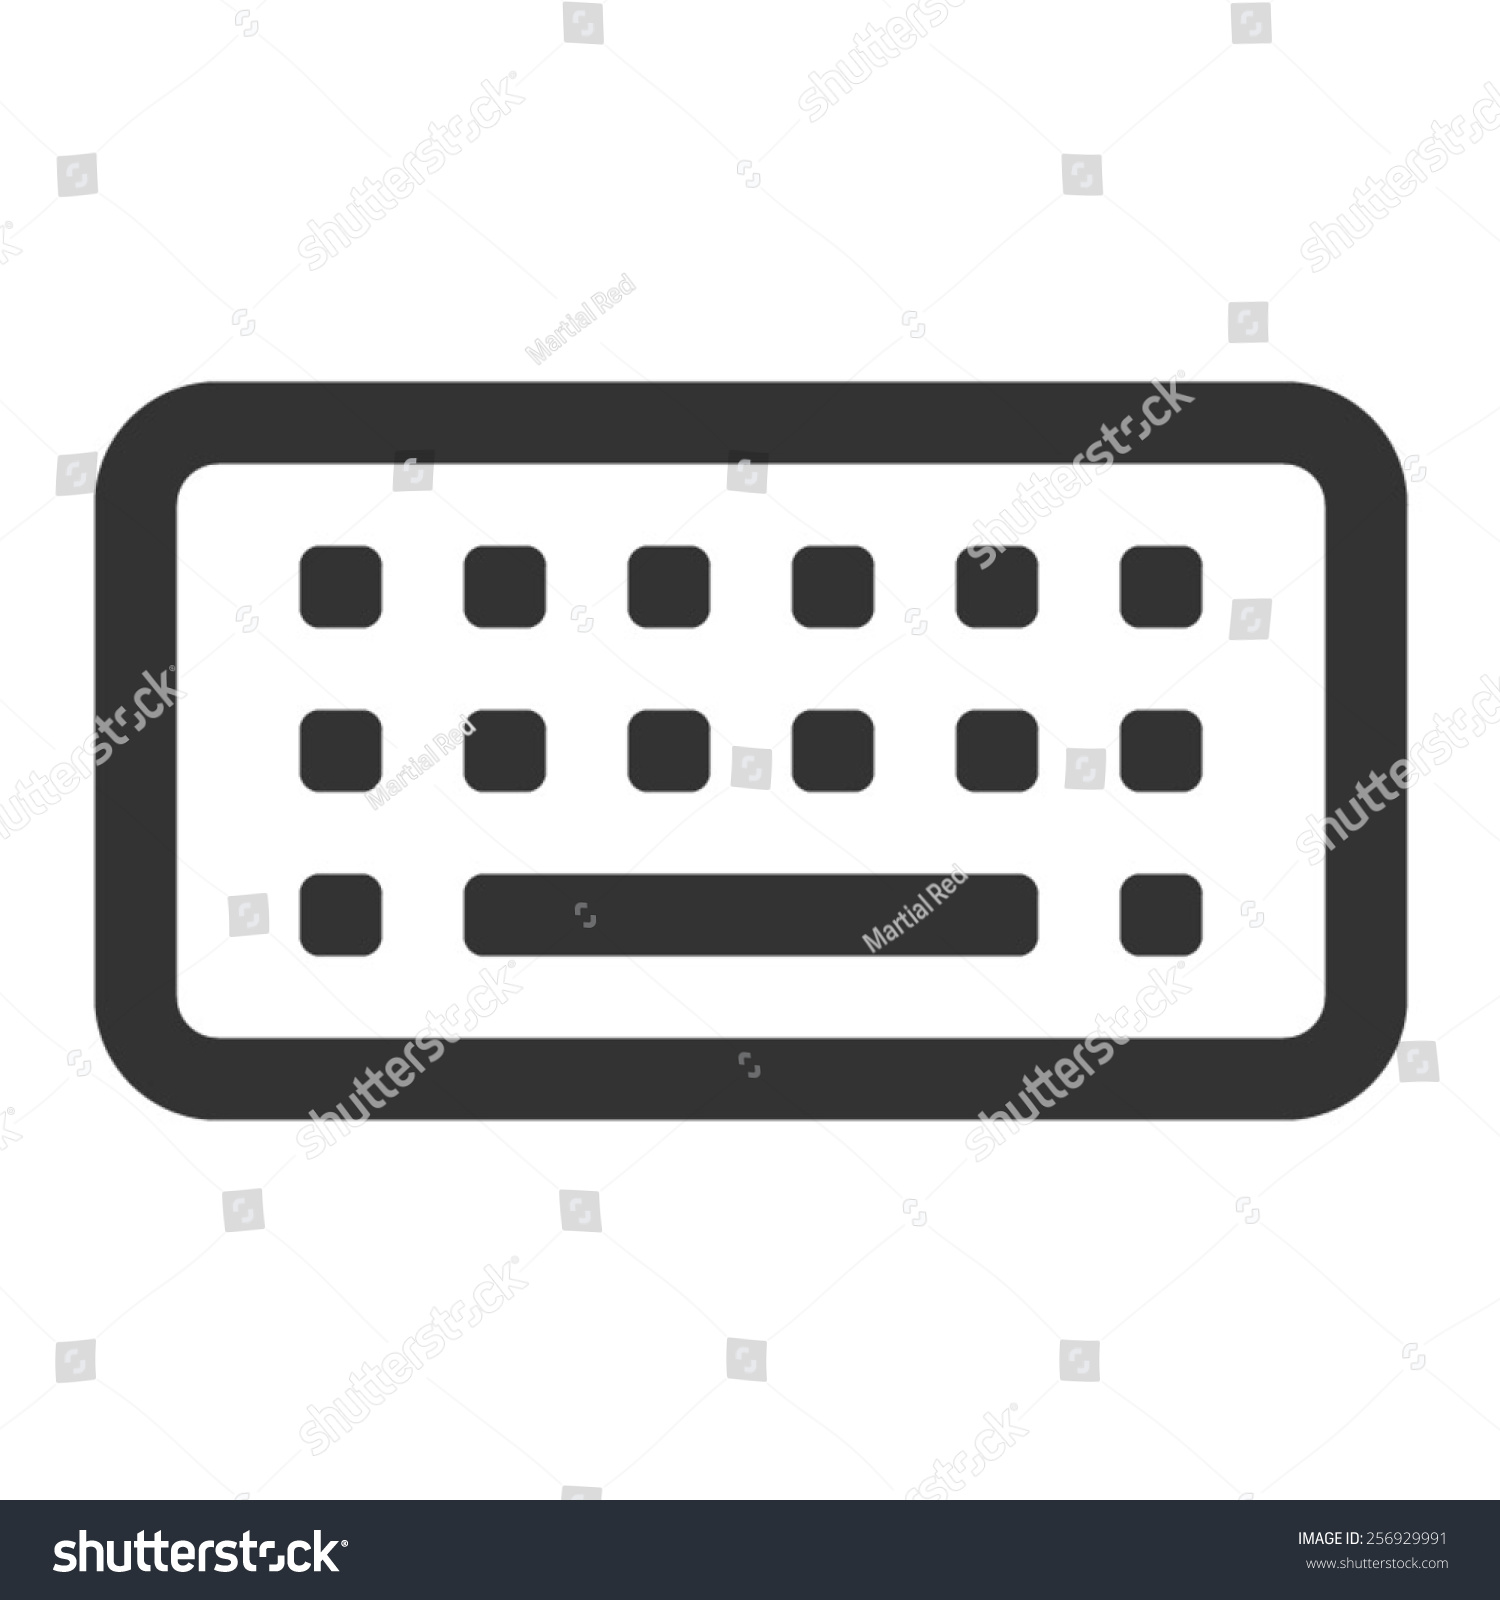 Line Art Keyboard : Virtual touch screen keyboard line art stock vector